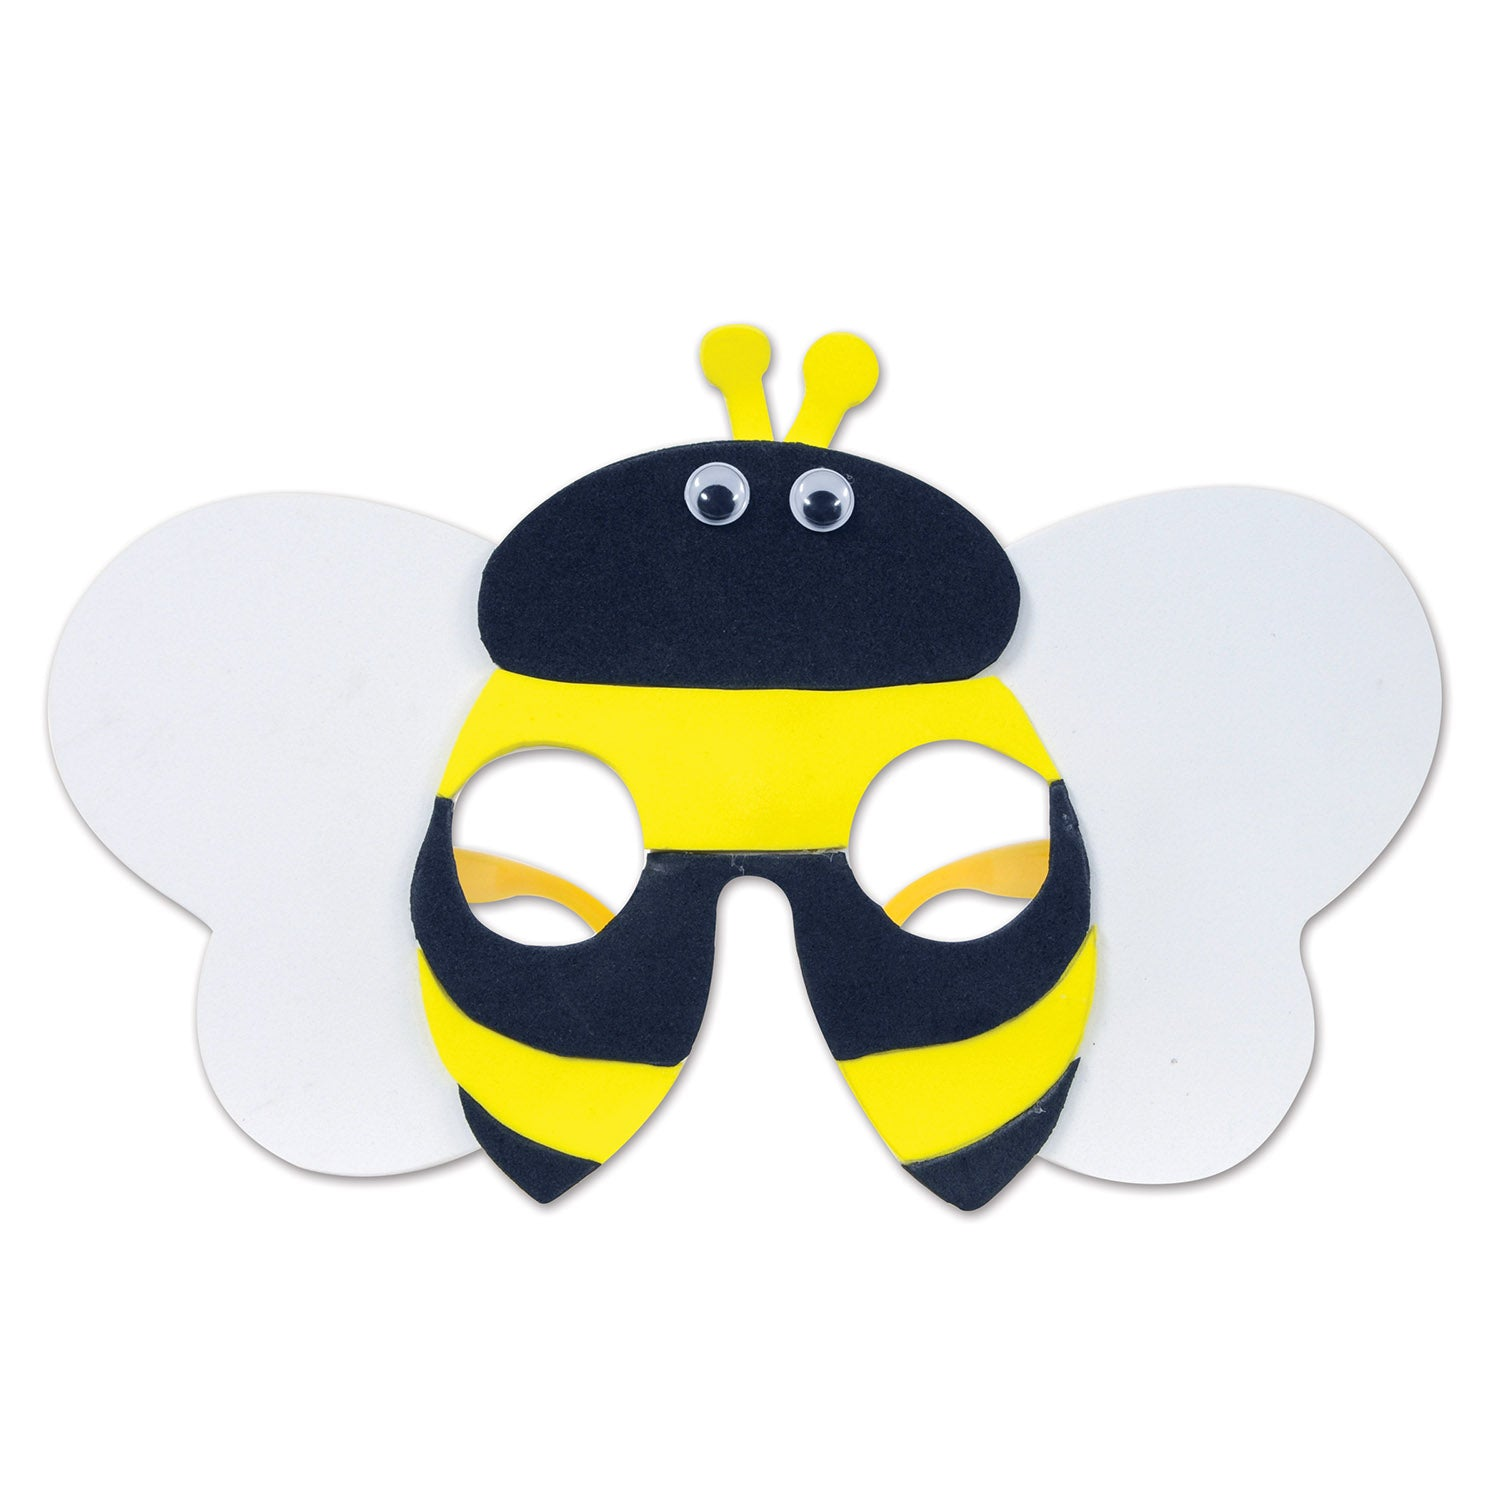 Bumblebee Glasses by Beistle - Spring/Summer Theme Decorations